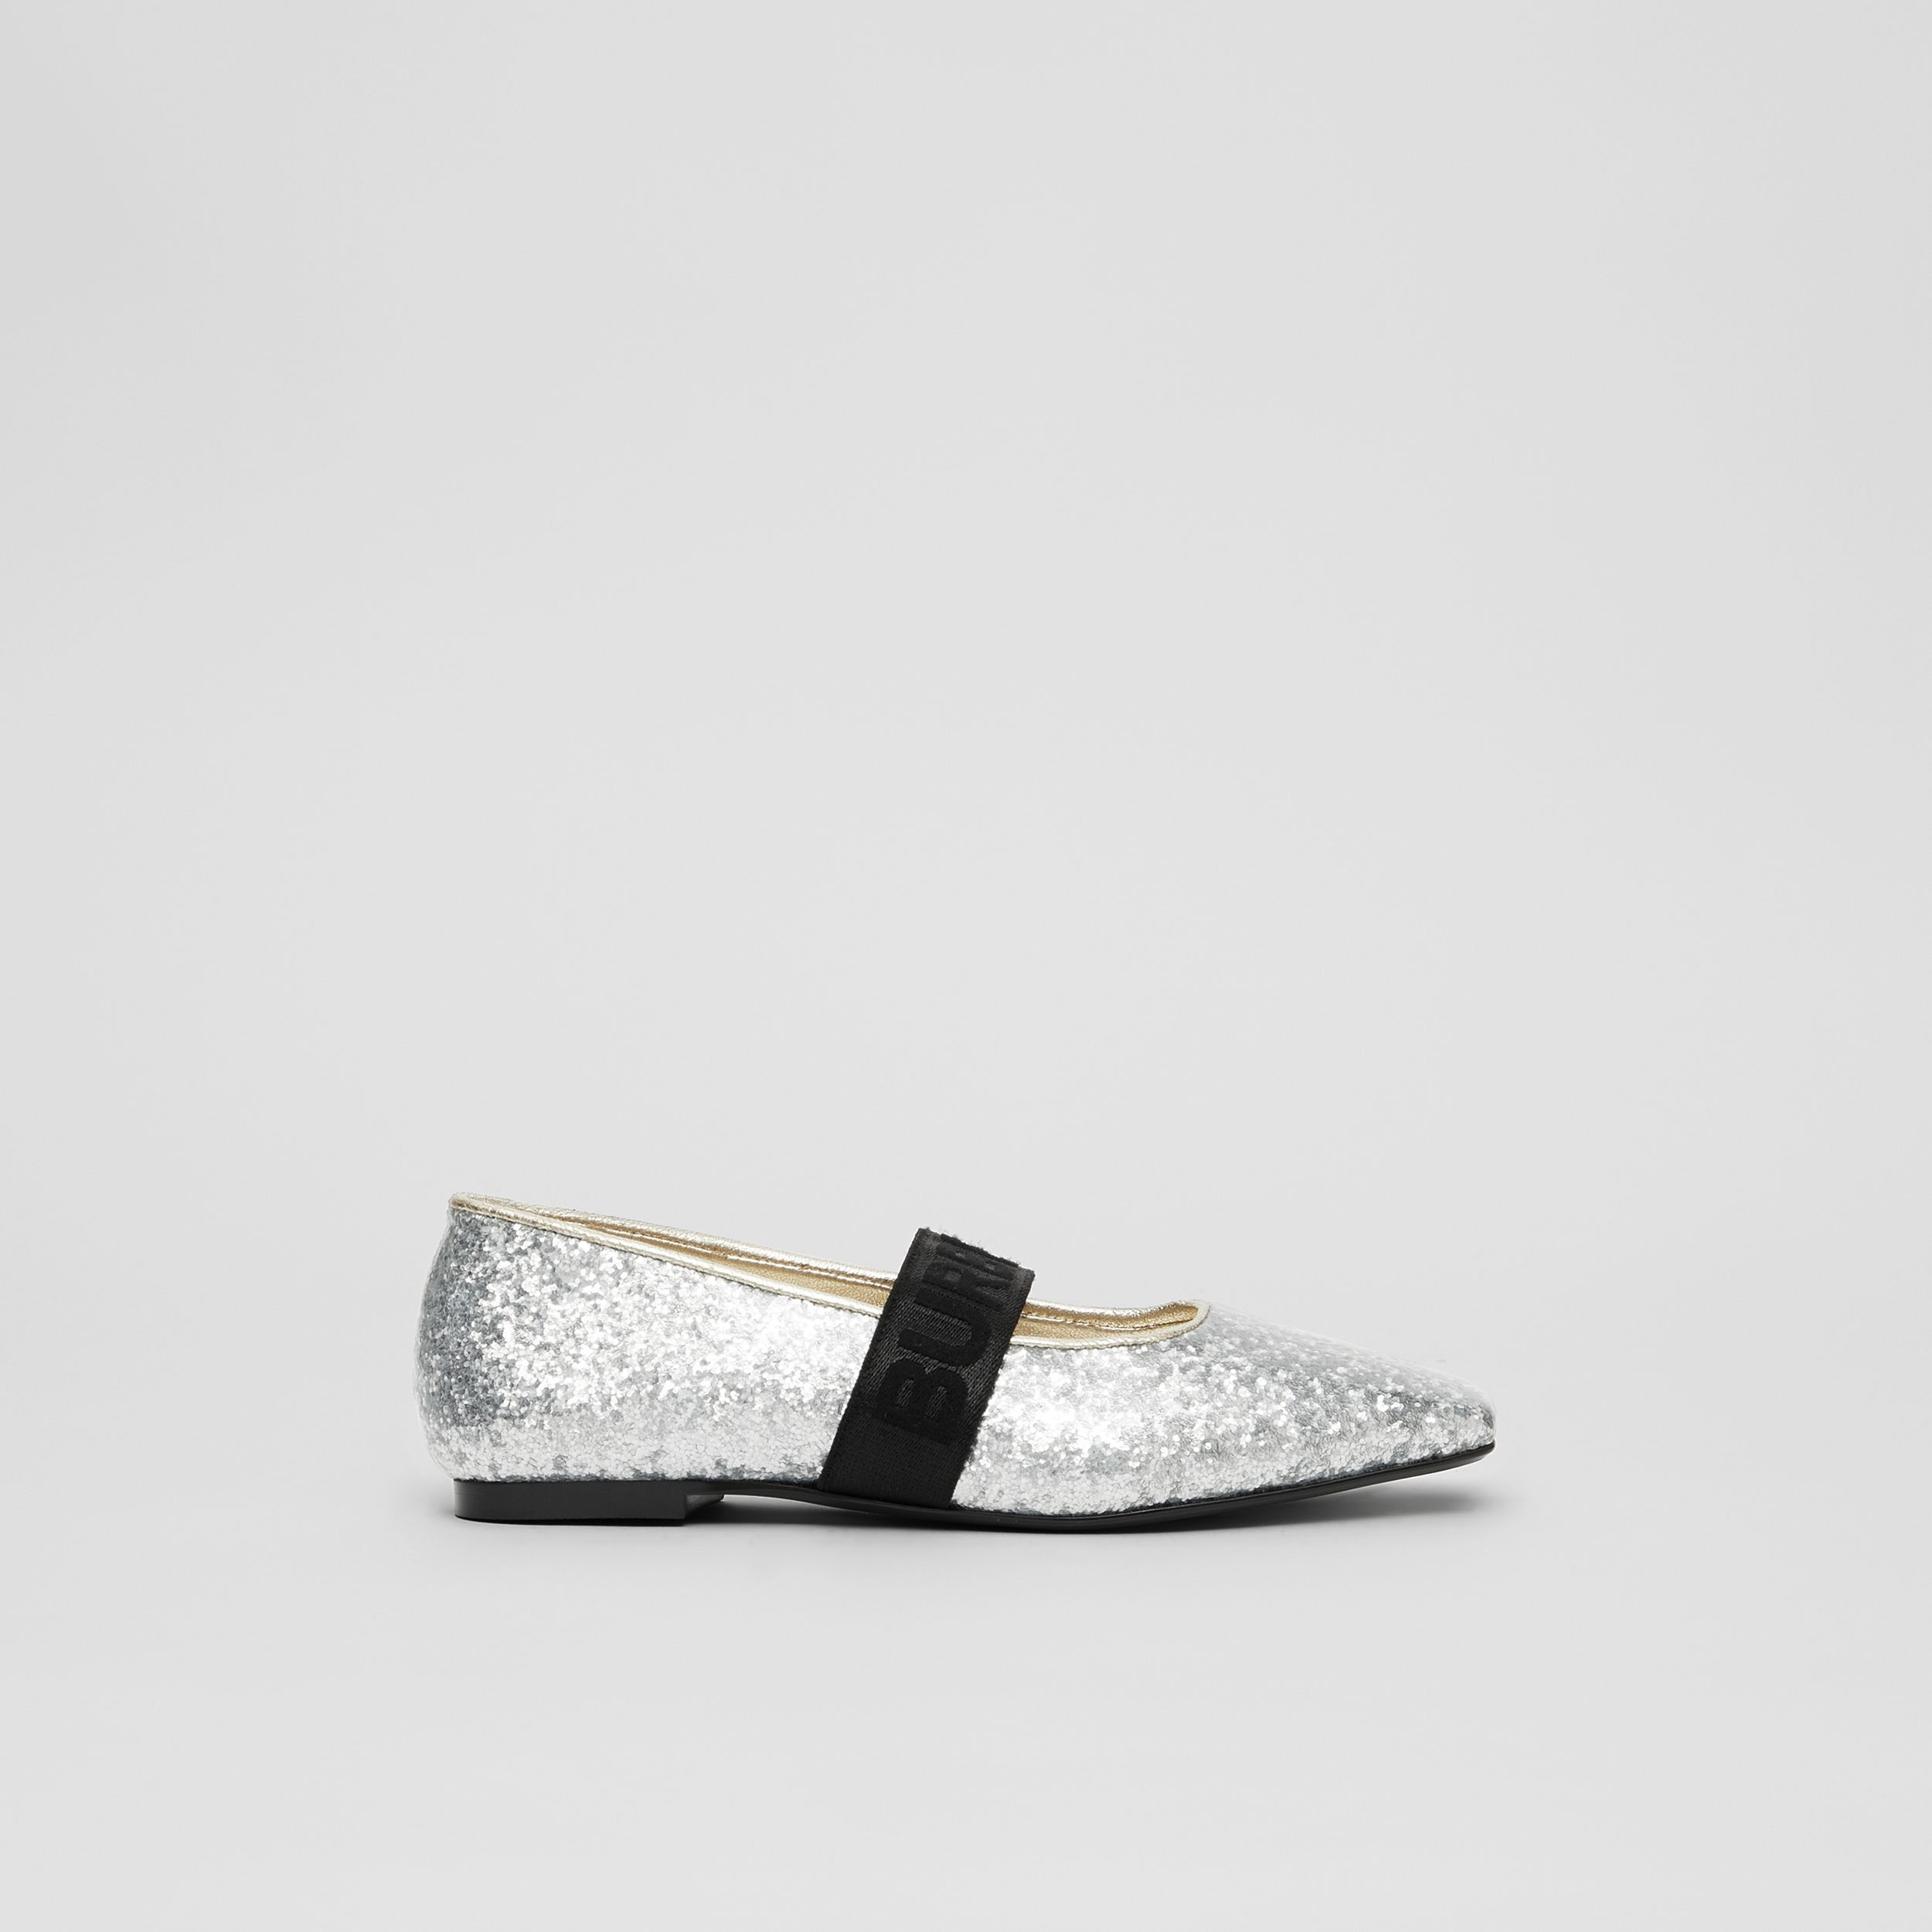 Logo Detail Glittery Flats in Silver - Children | Burberry - 4